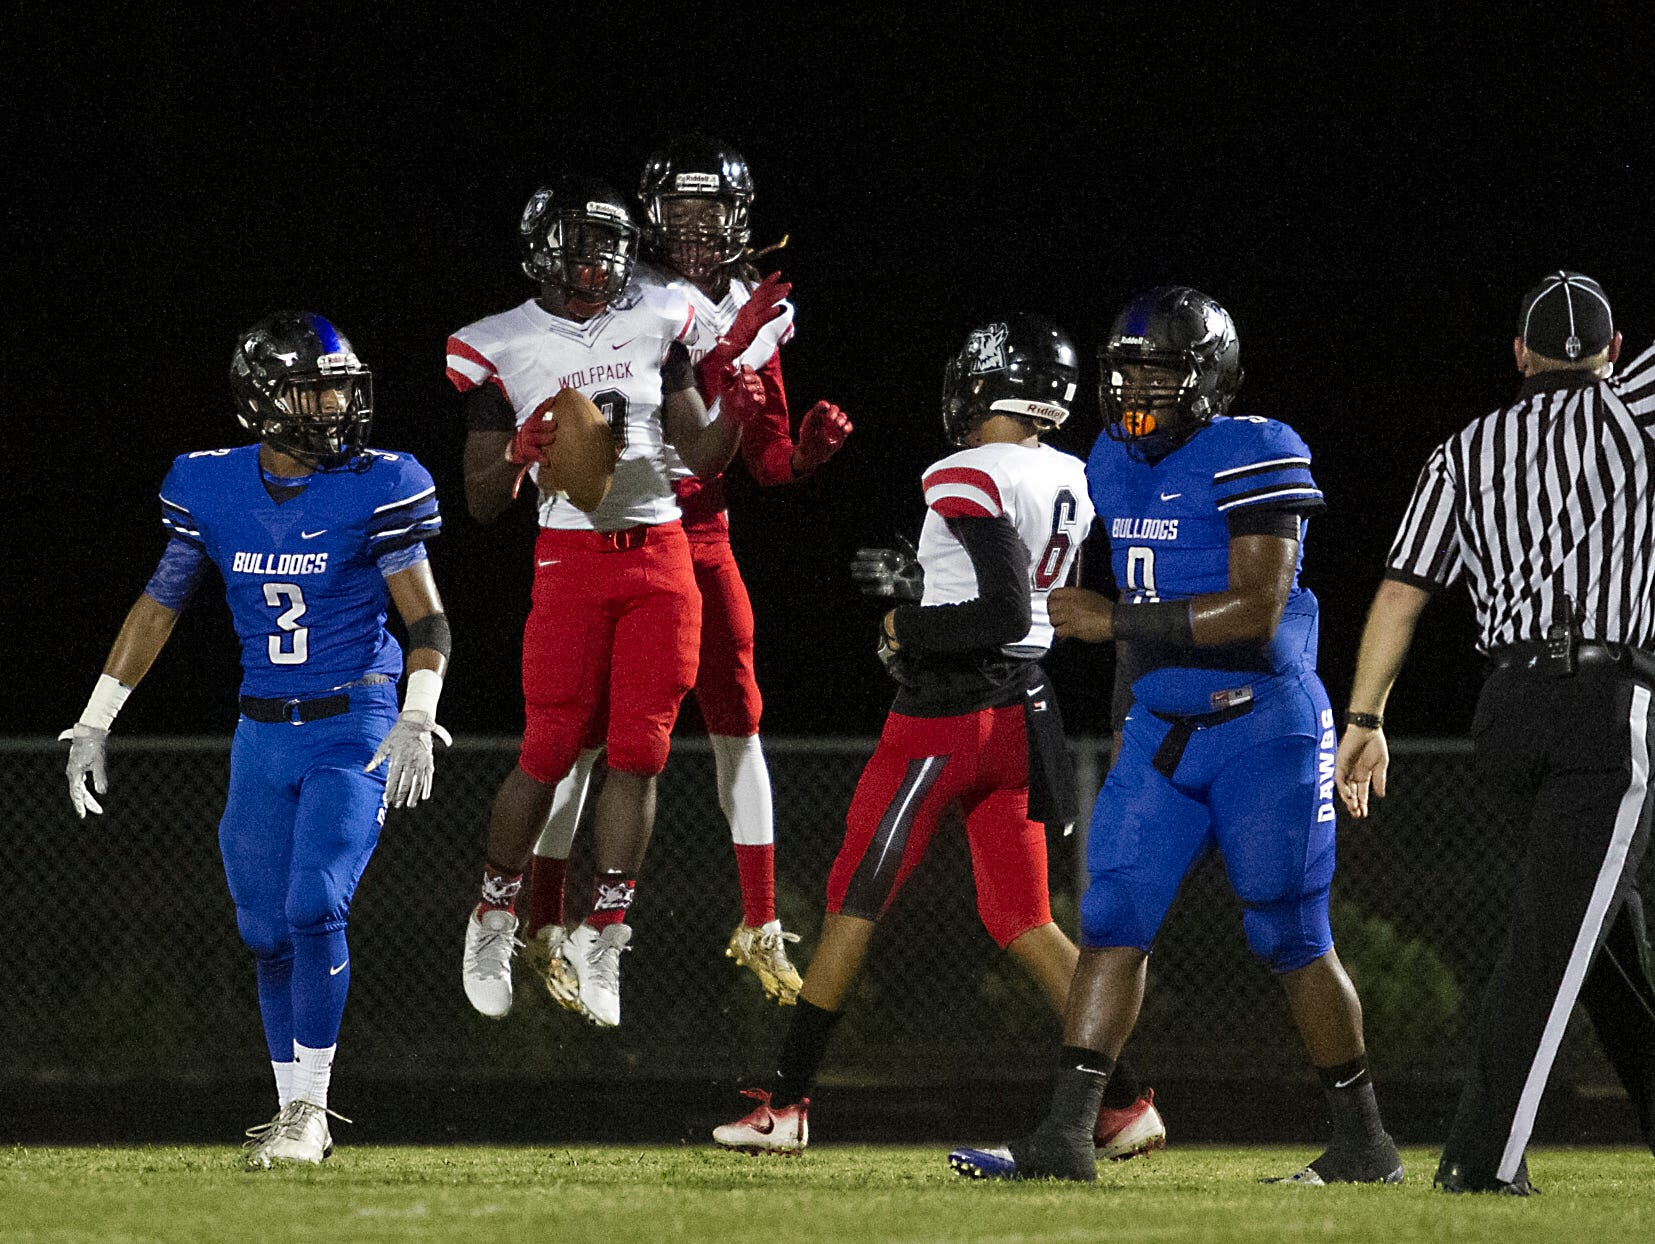 South Fort Myers remains No. 1 in the Fab 5. The Wolfpack face Riverdale in their District 7A-12 opener Friday.